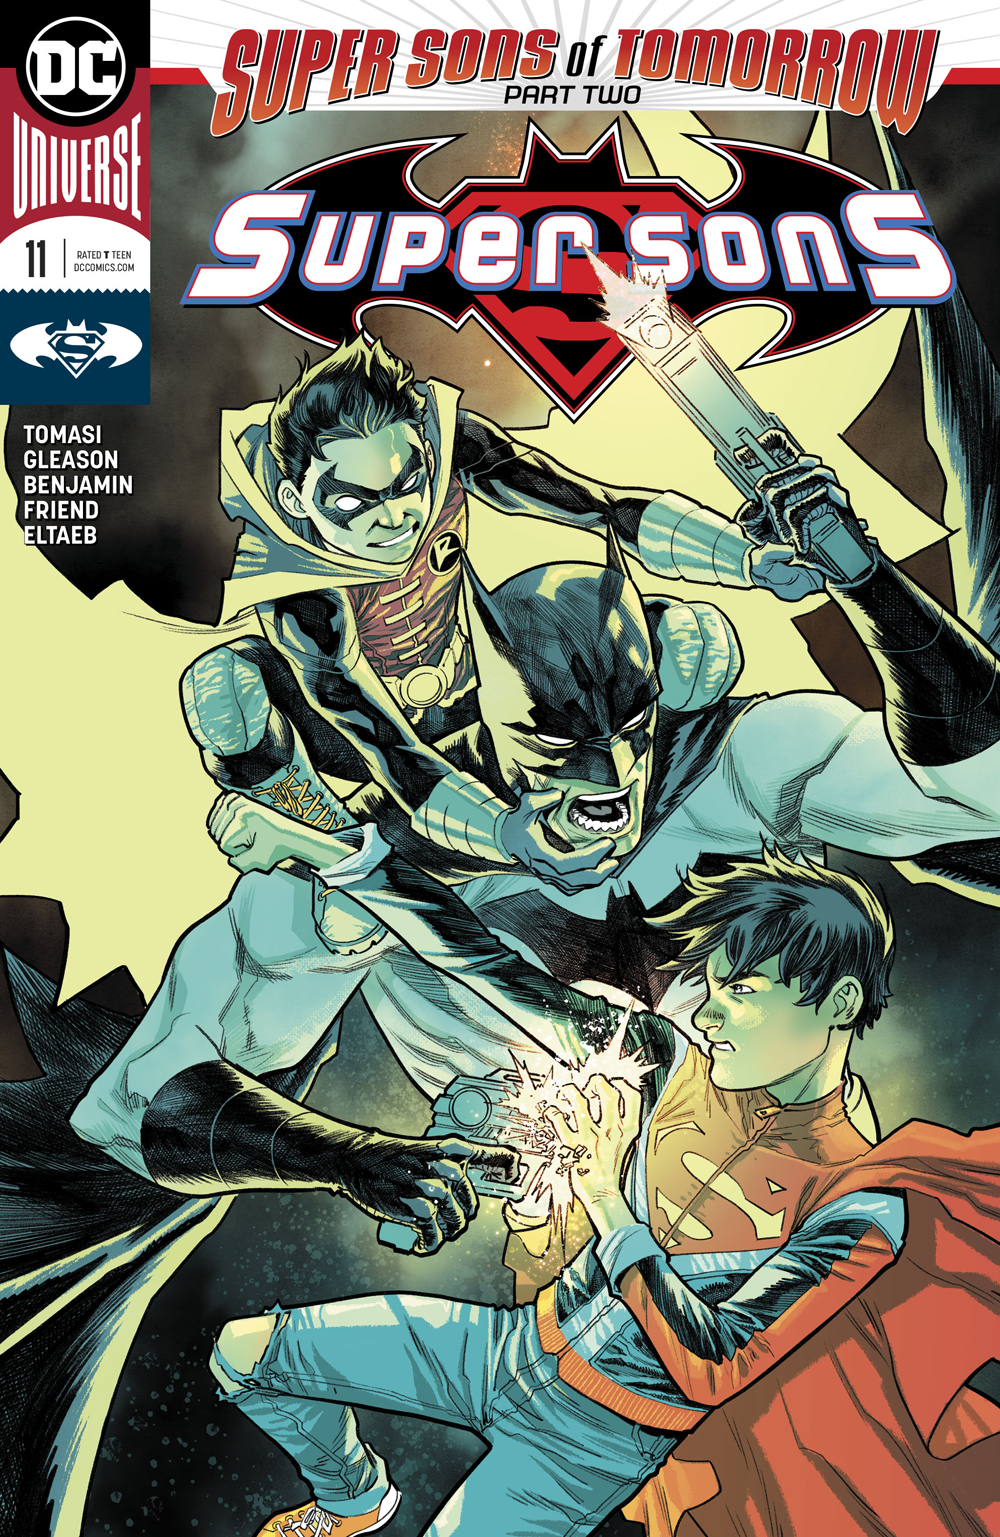 Super Sons #11